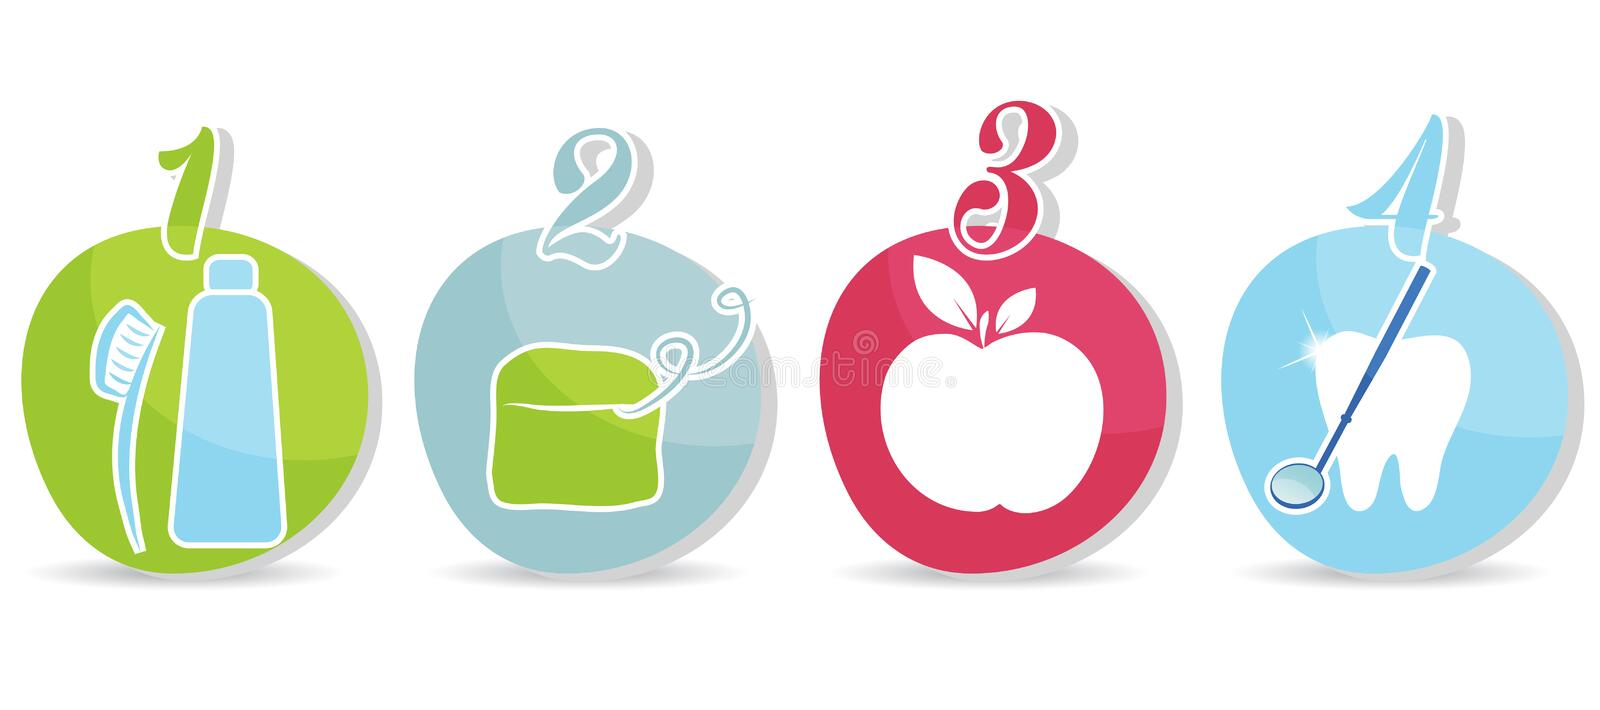 Dental icons. Healthy teeth recommendations. Brush daily, floss daily, eat healthy food, regular dental visits stock illustration